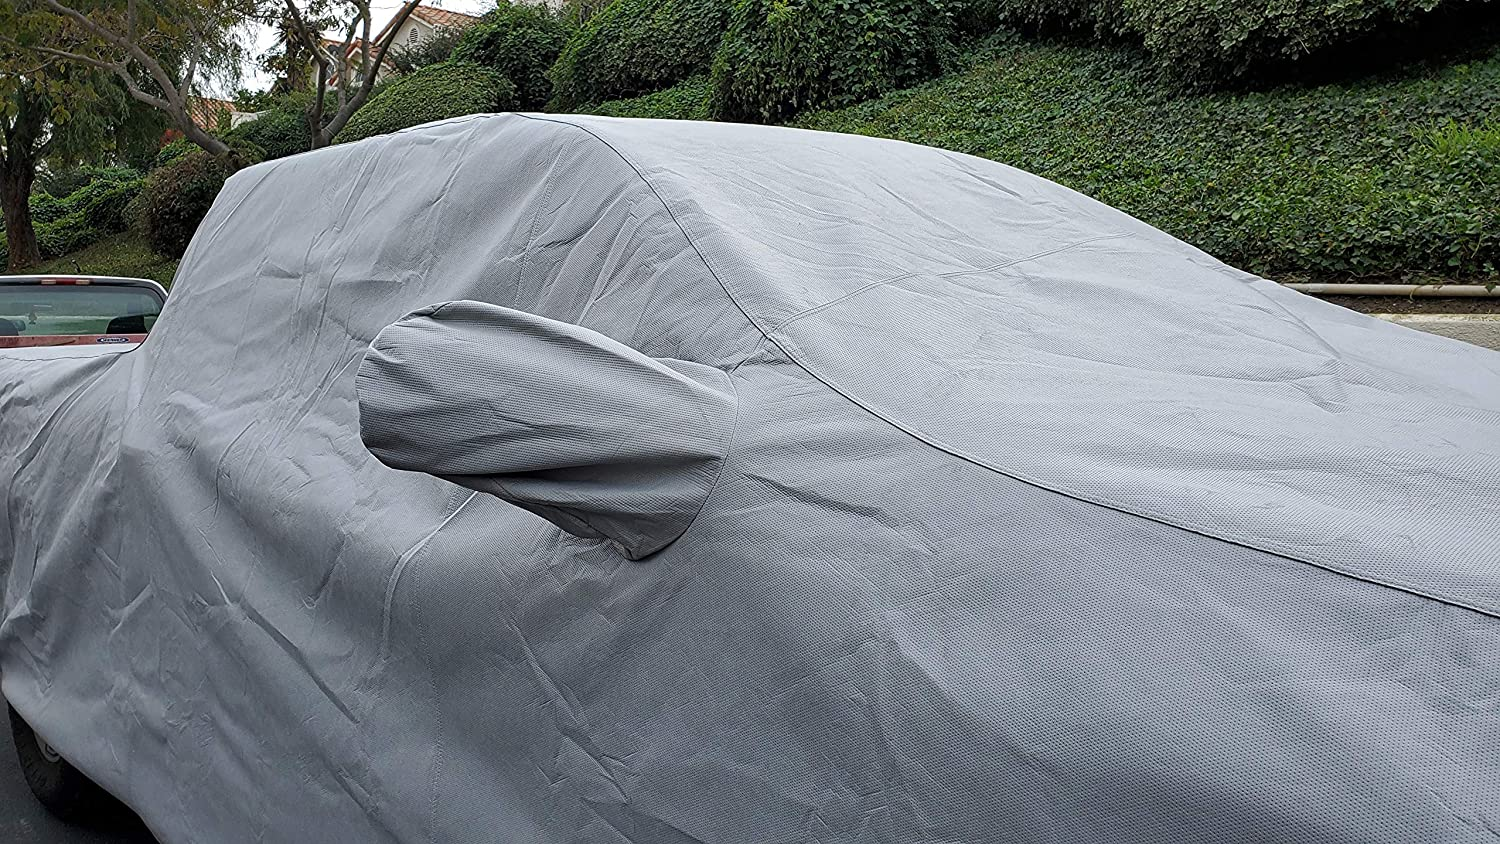 DMB Car Cover for 2014-2020 Chevy Silverado 1500 Crew Cab Short Bed 5 8 All Weather Heavy Duty